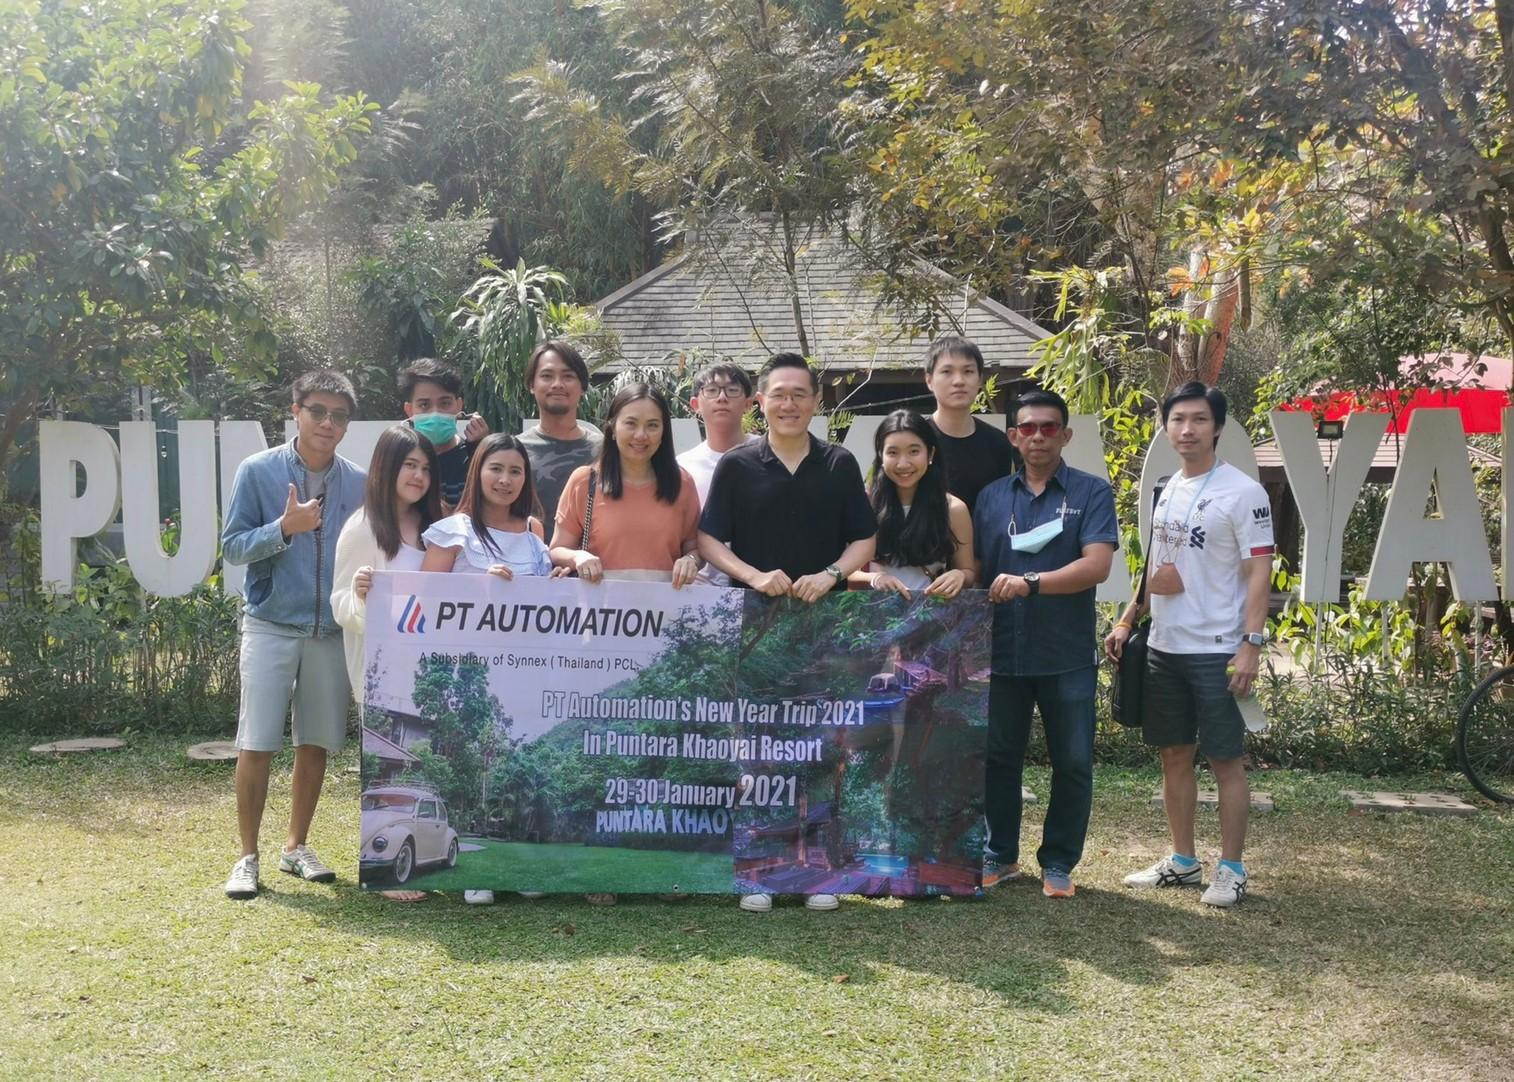 PT Automation's outing 2021 at Khaoyai